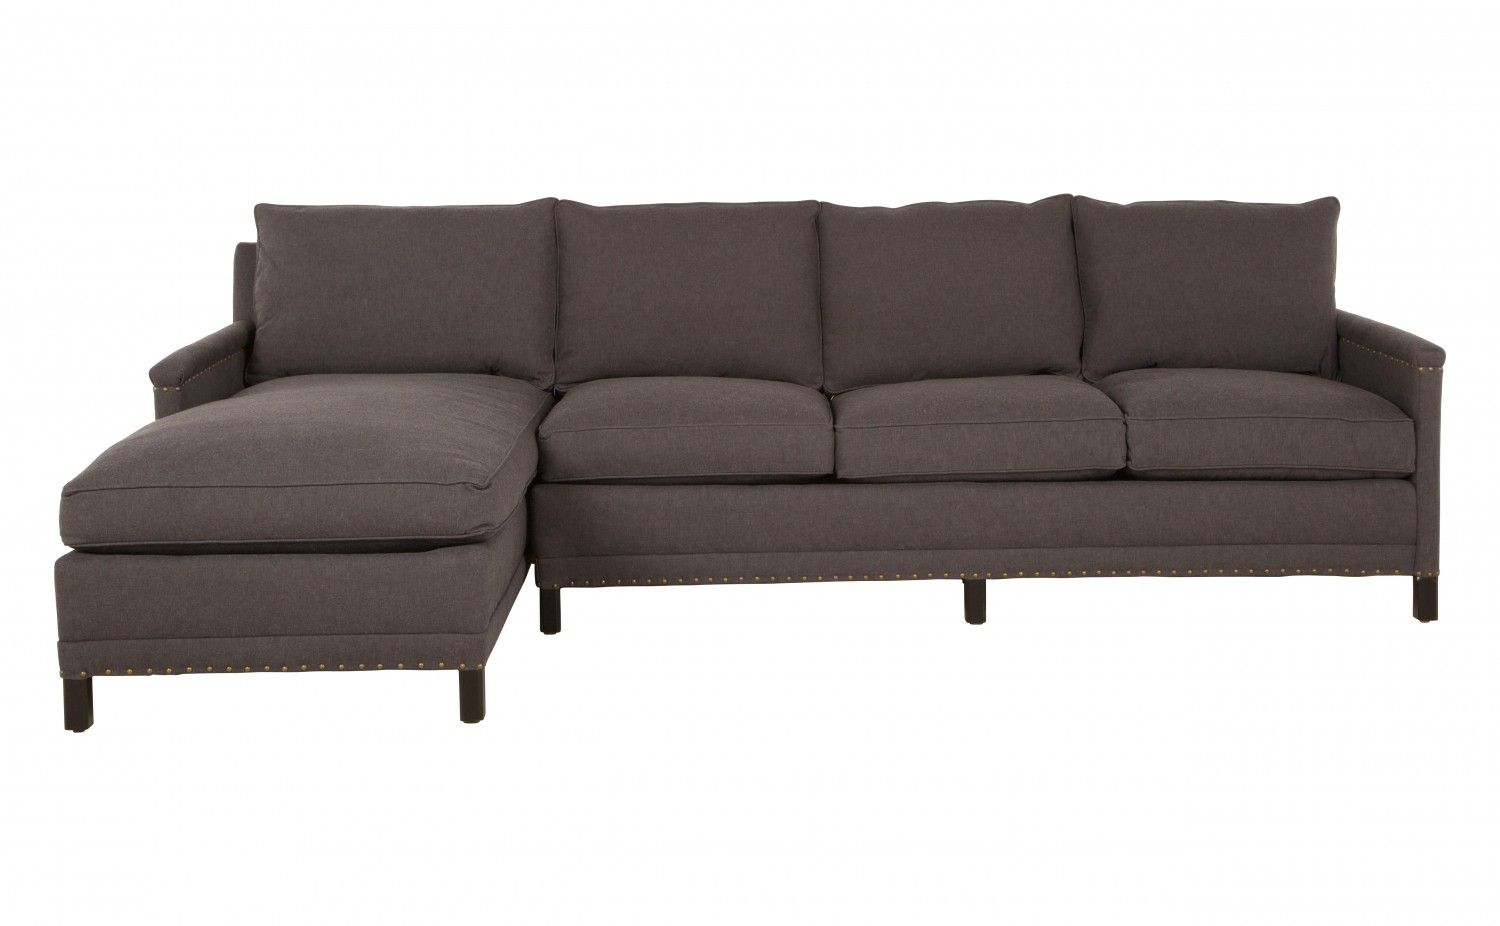 Clinton sectional furniture sale jayson home u d for